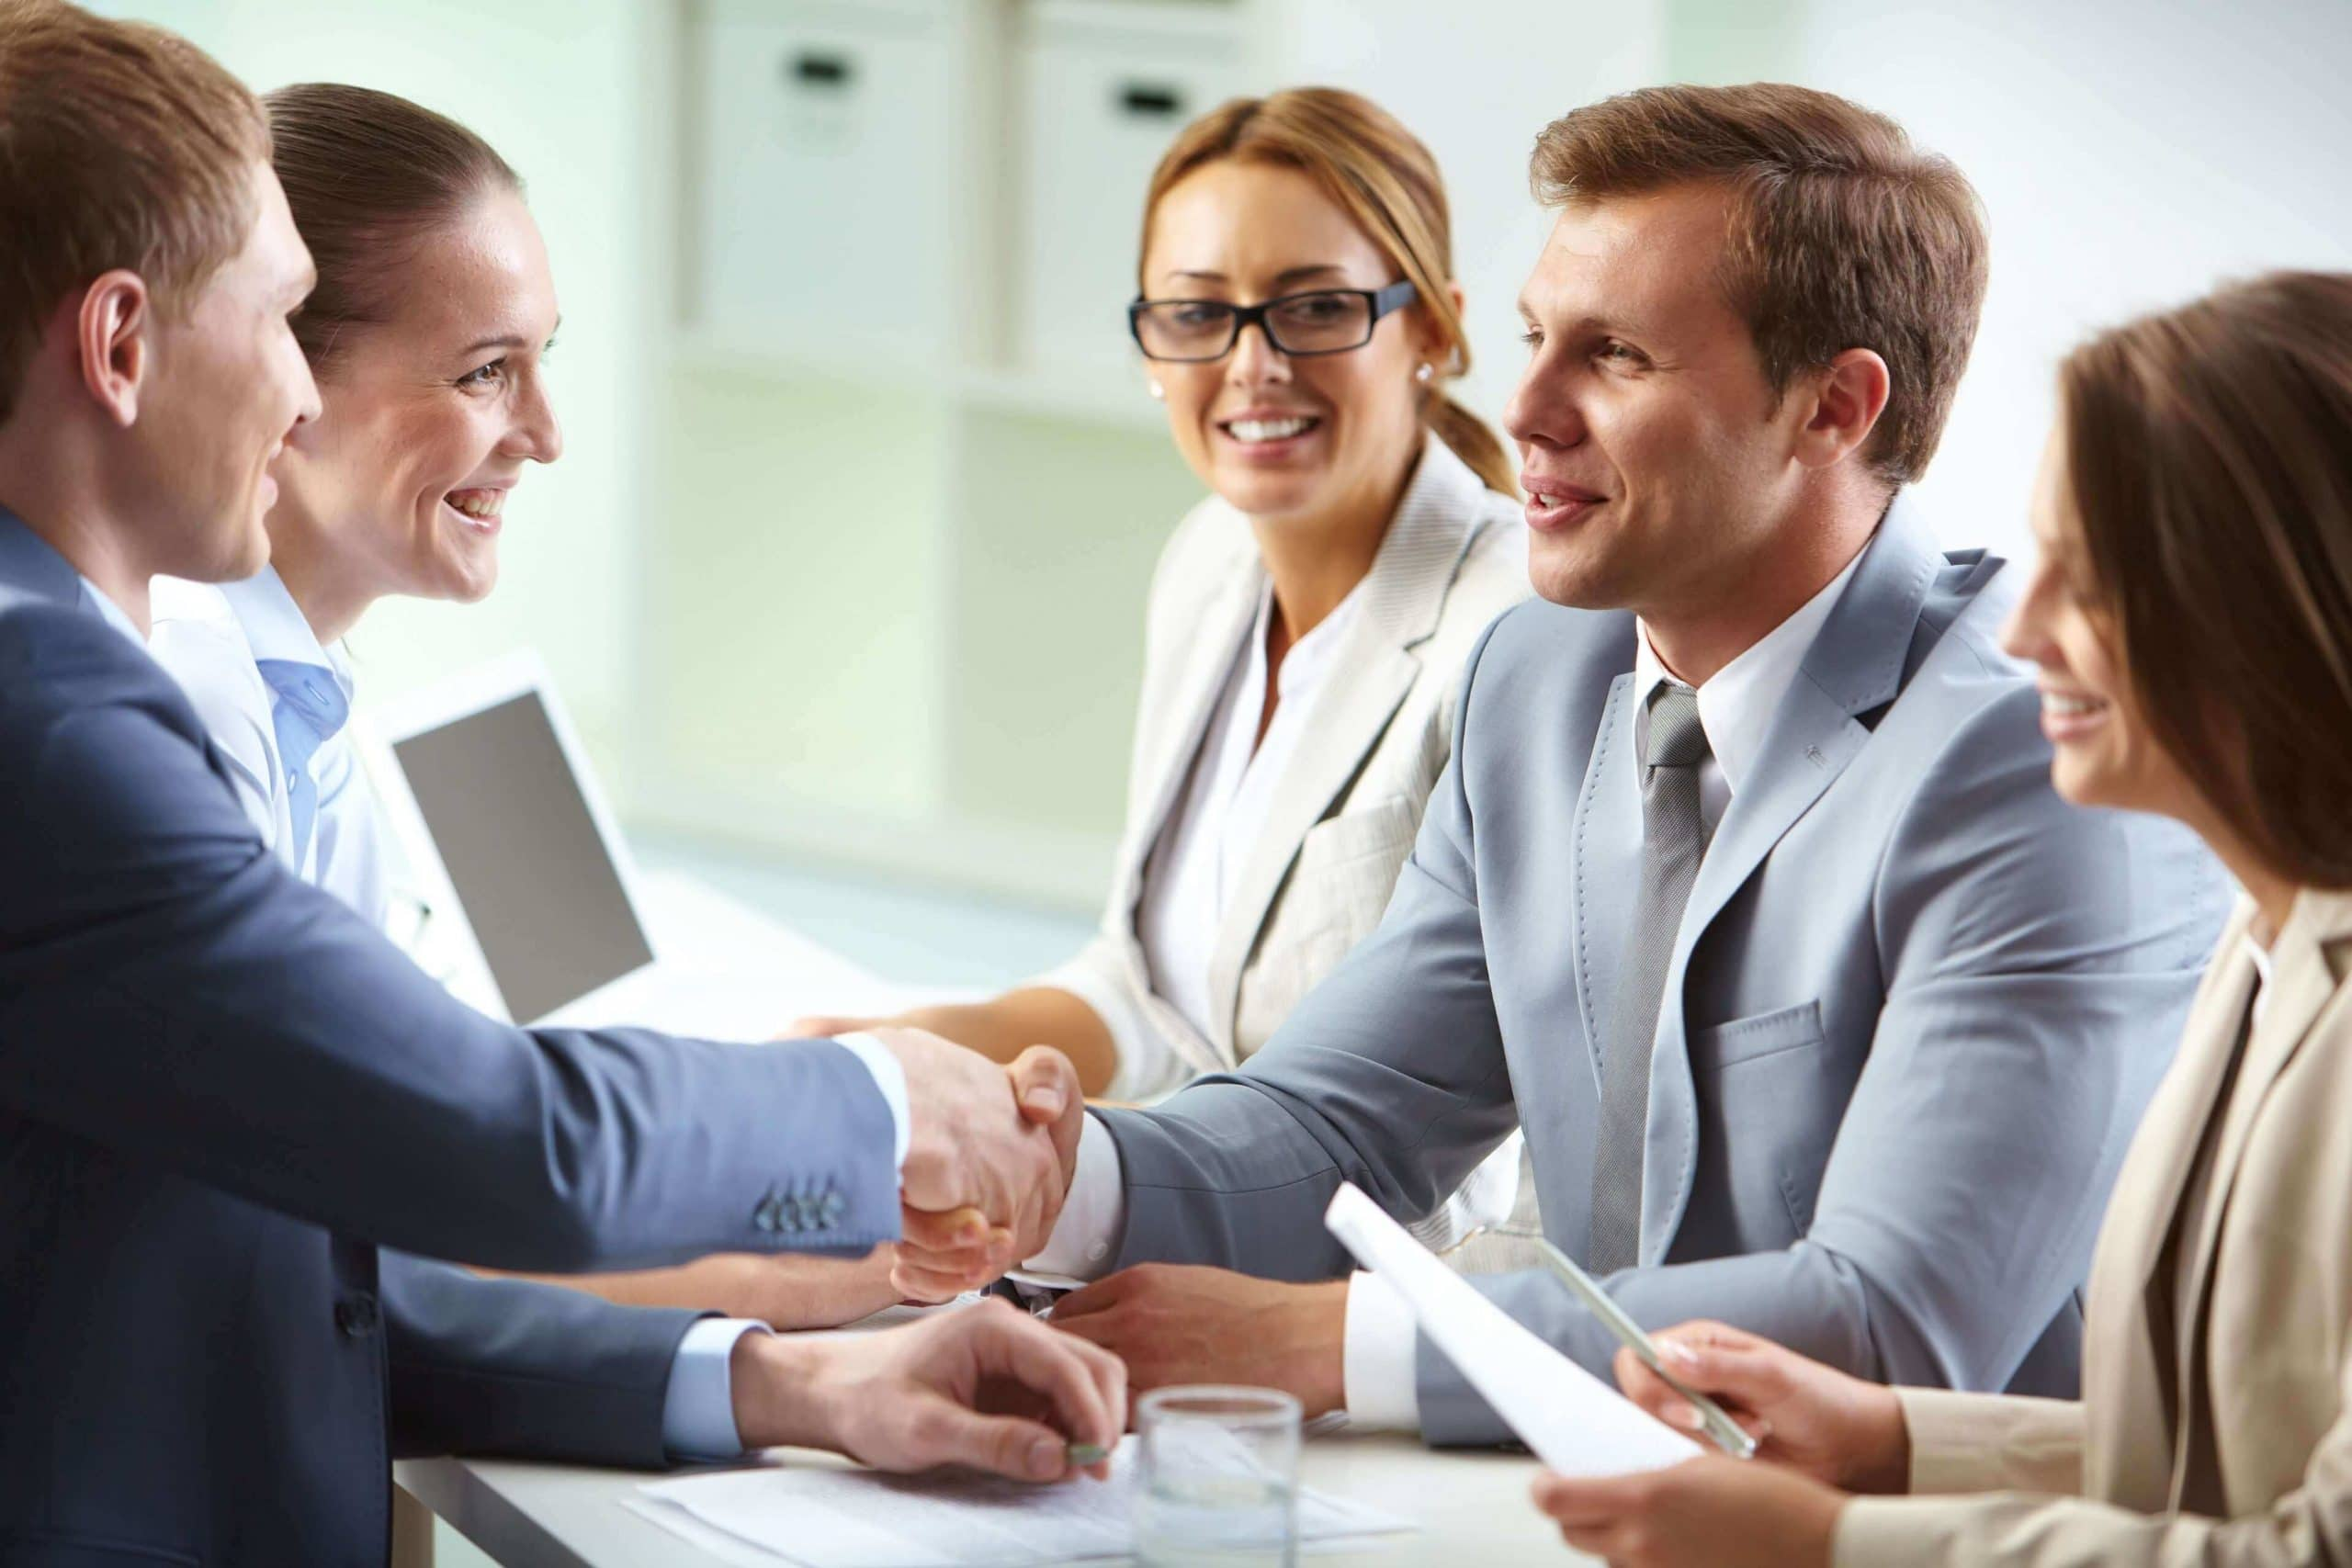 How to start your own consulting business